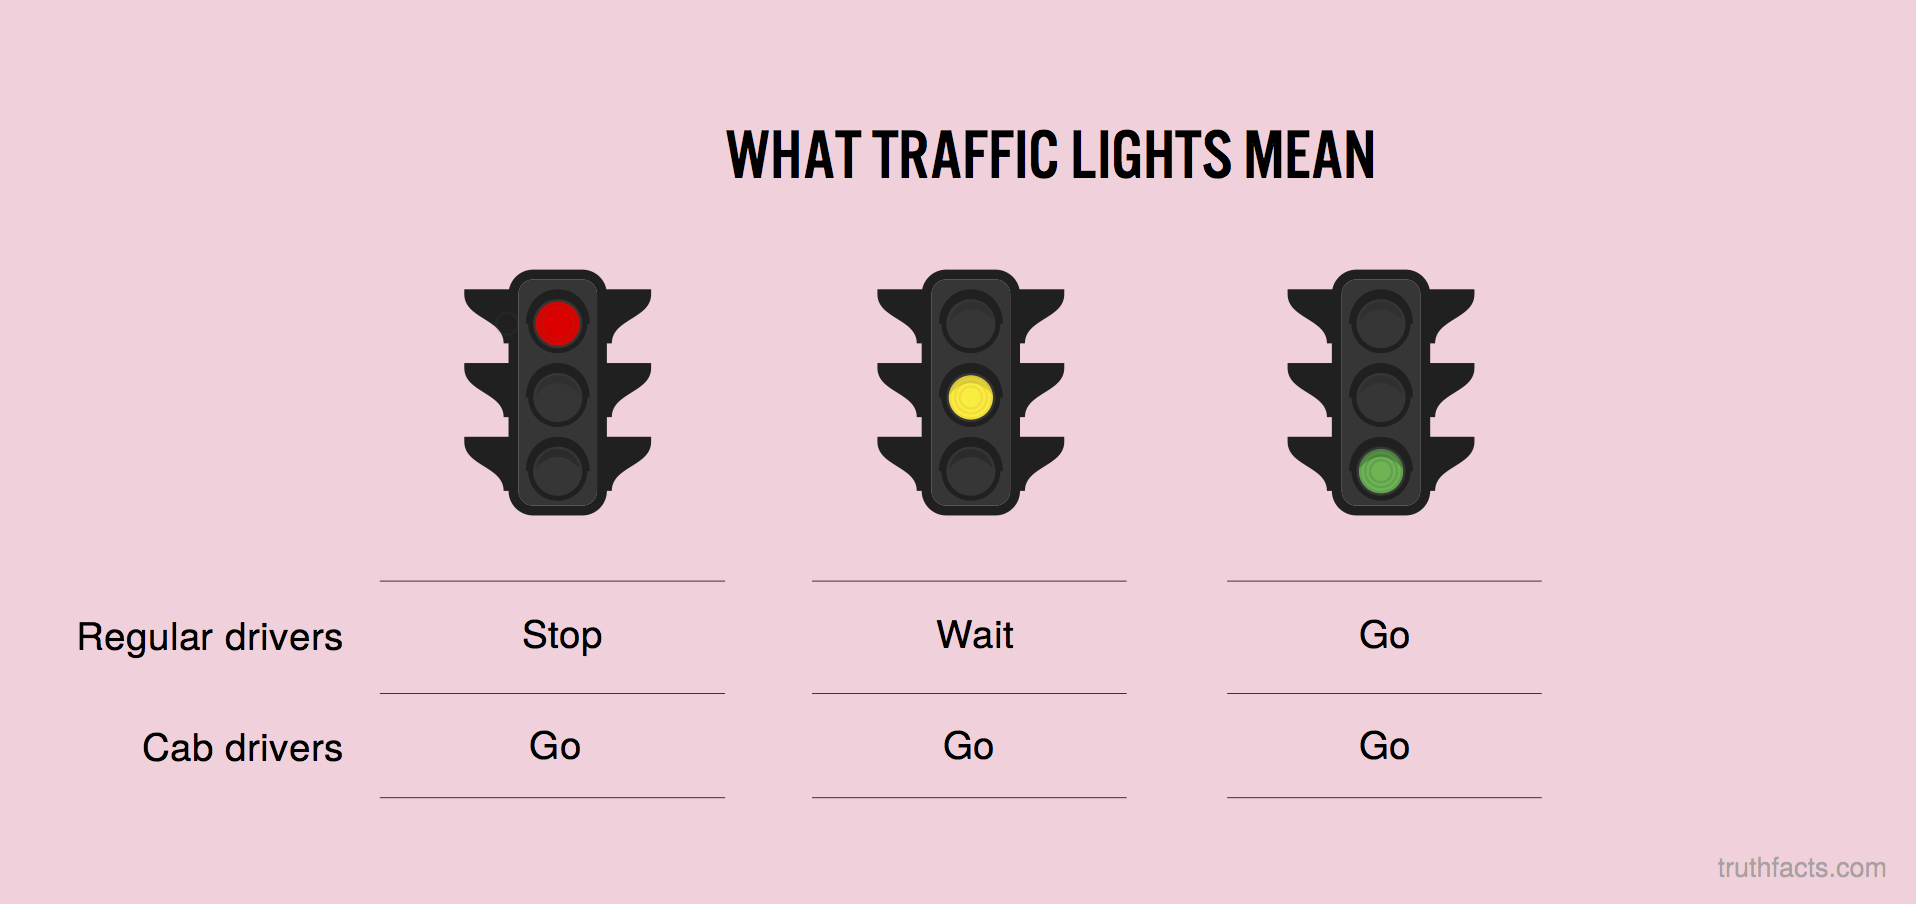 What traffic lights mean